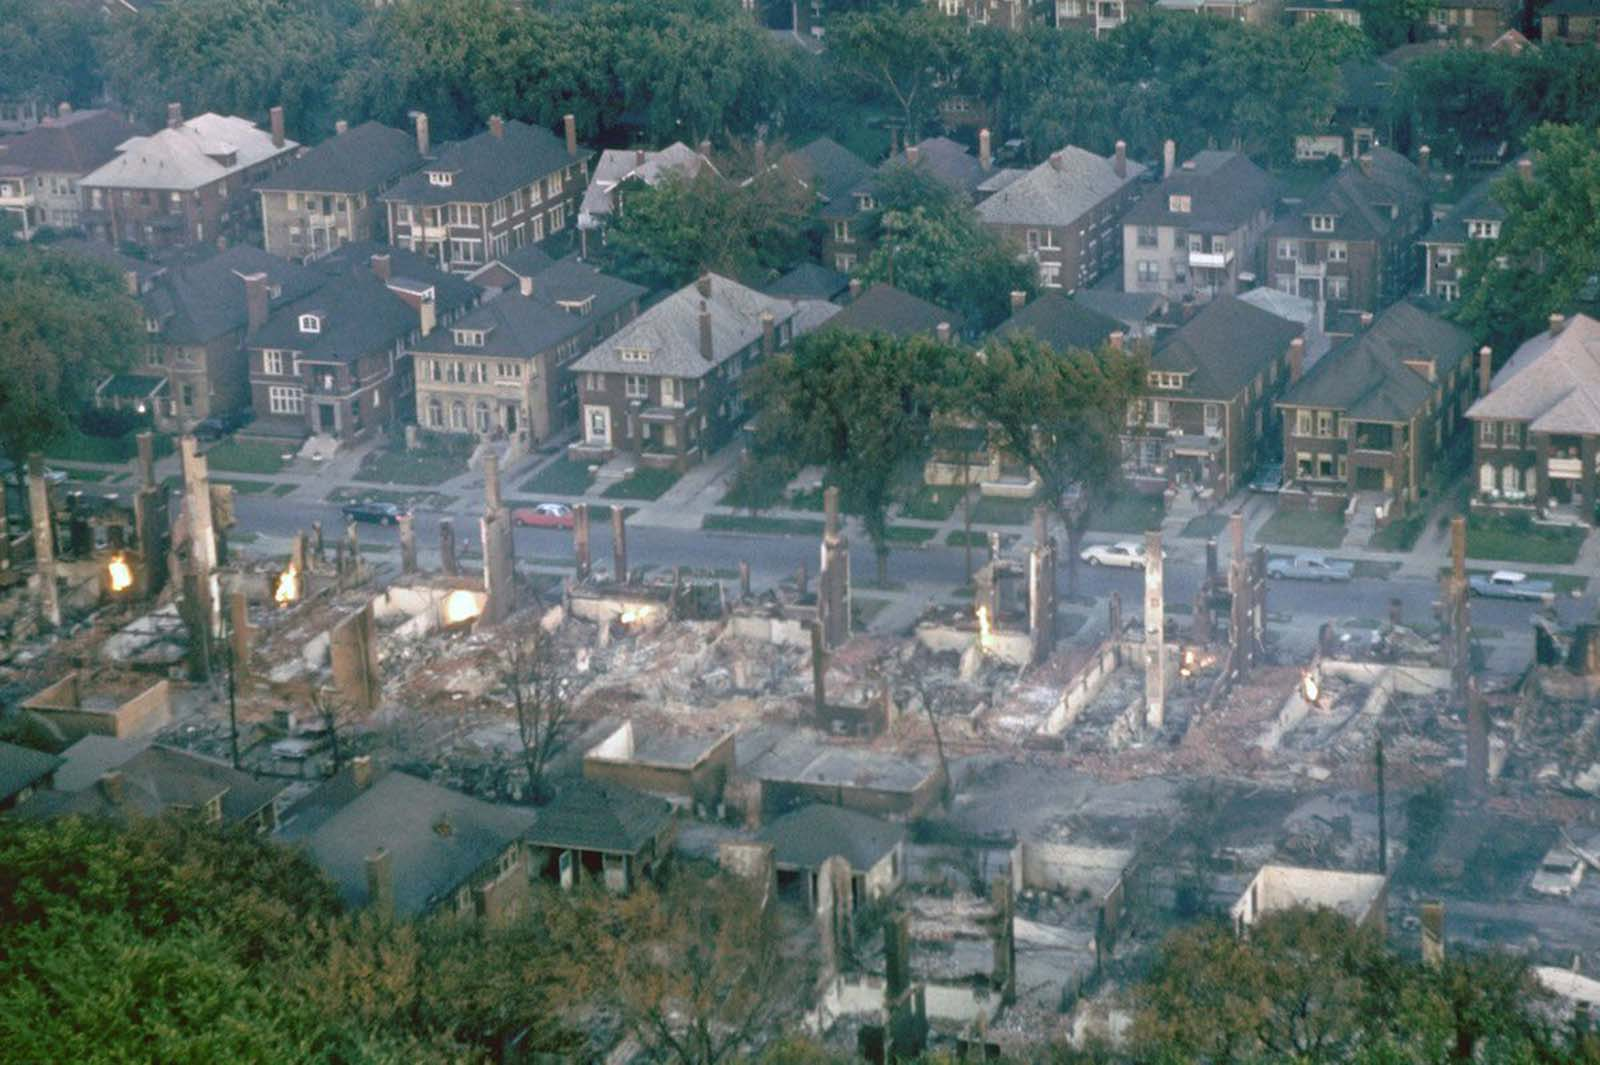 Smoldering ruins of a middle-class black neighborhood.